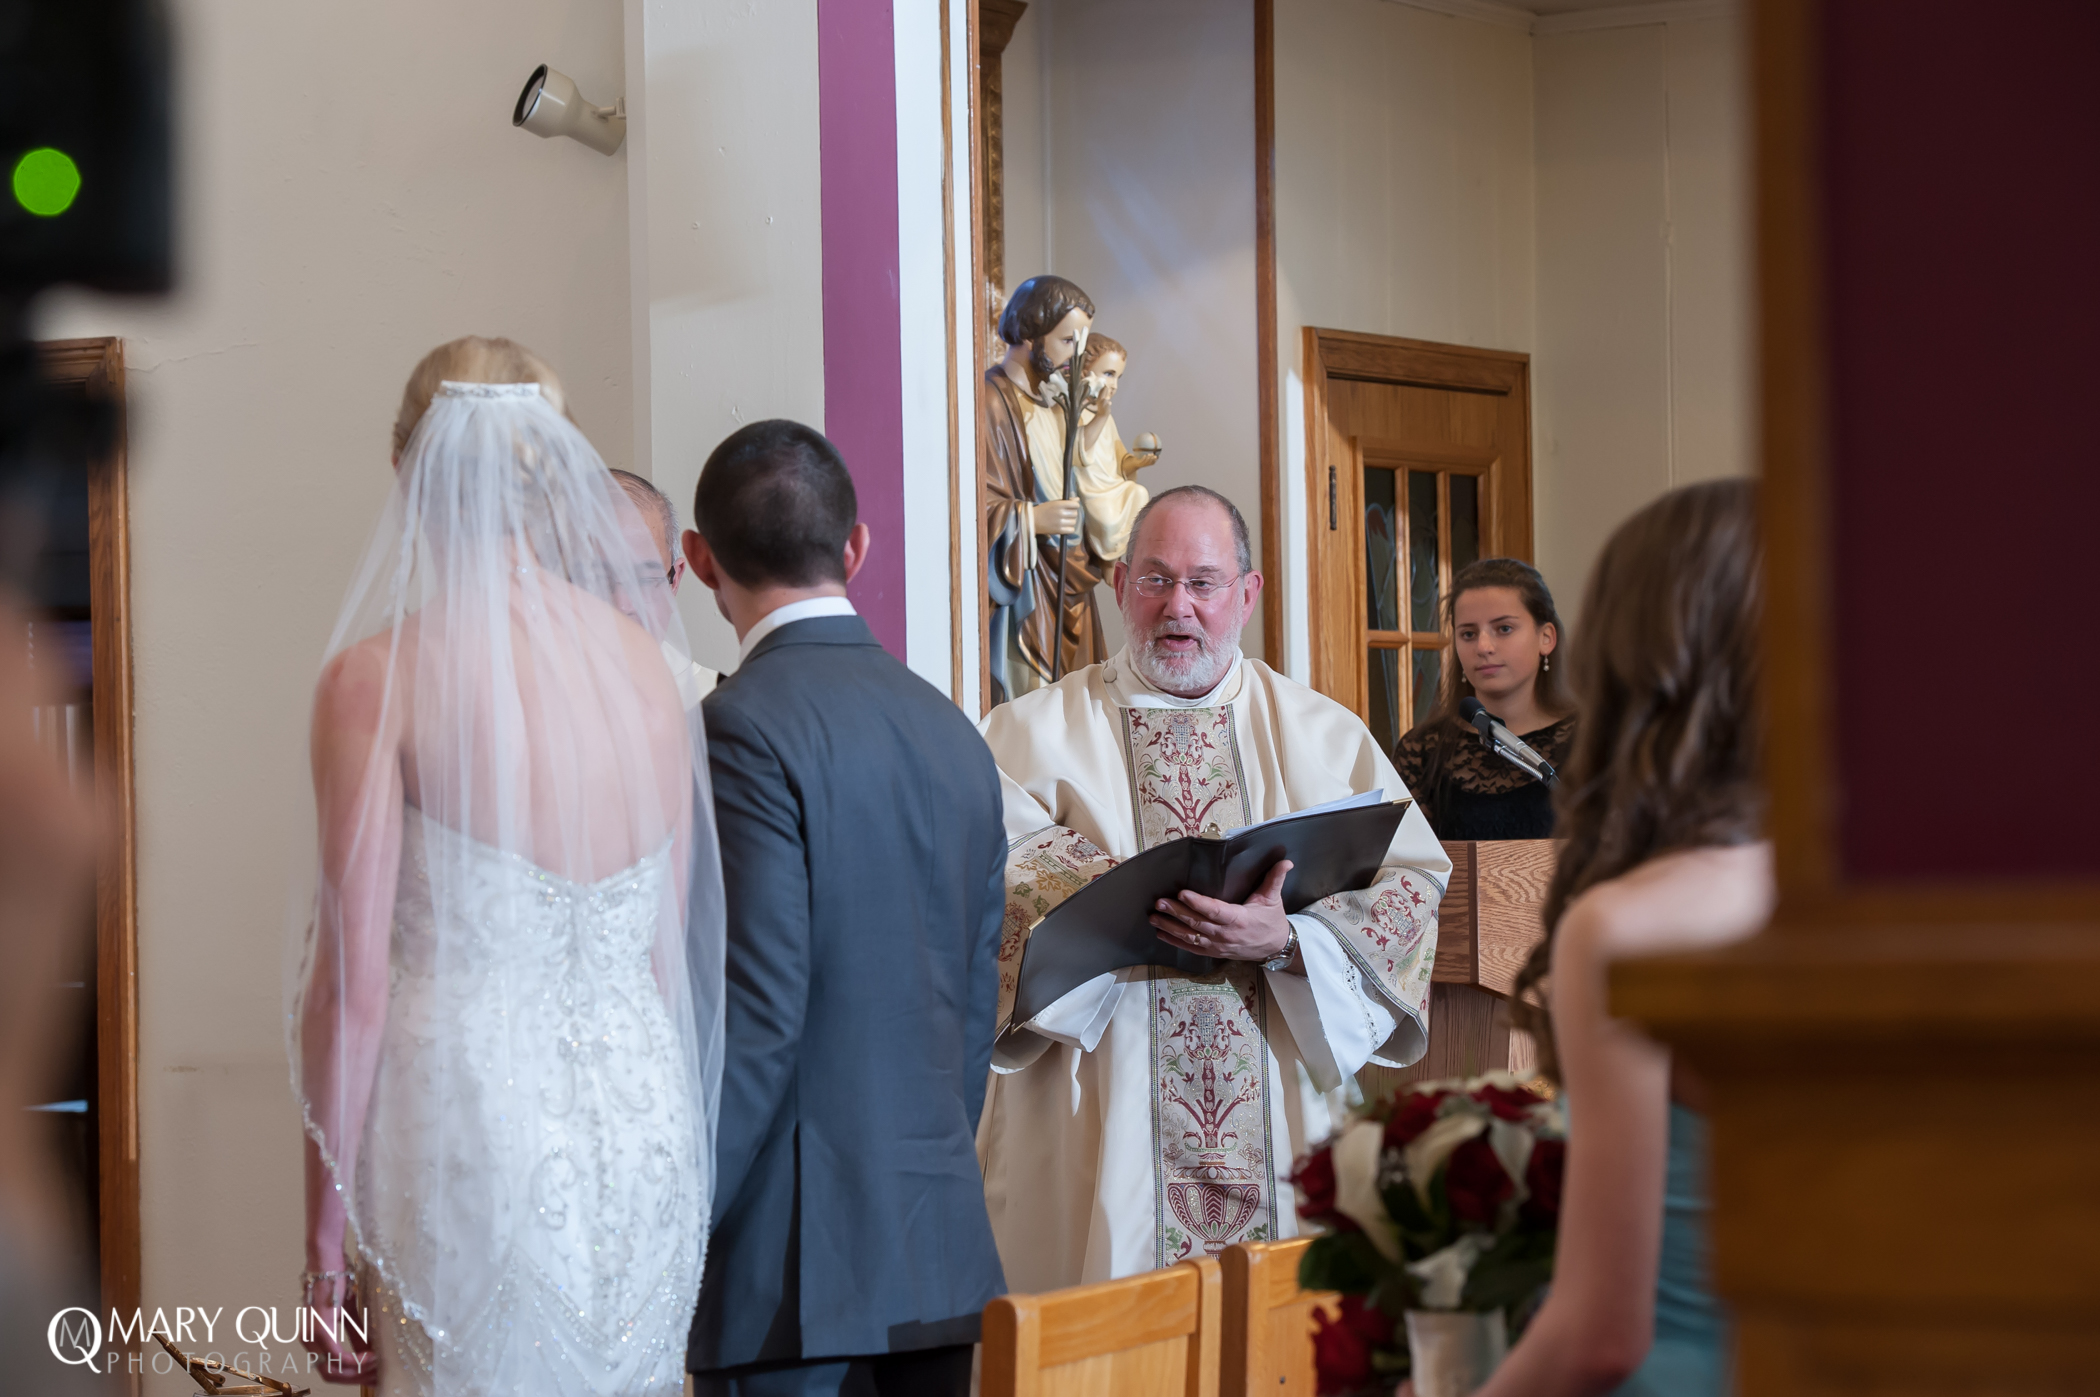 Our Lady Queen of Peace Hainesport New Jersey Wedding Photographer